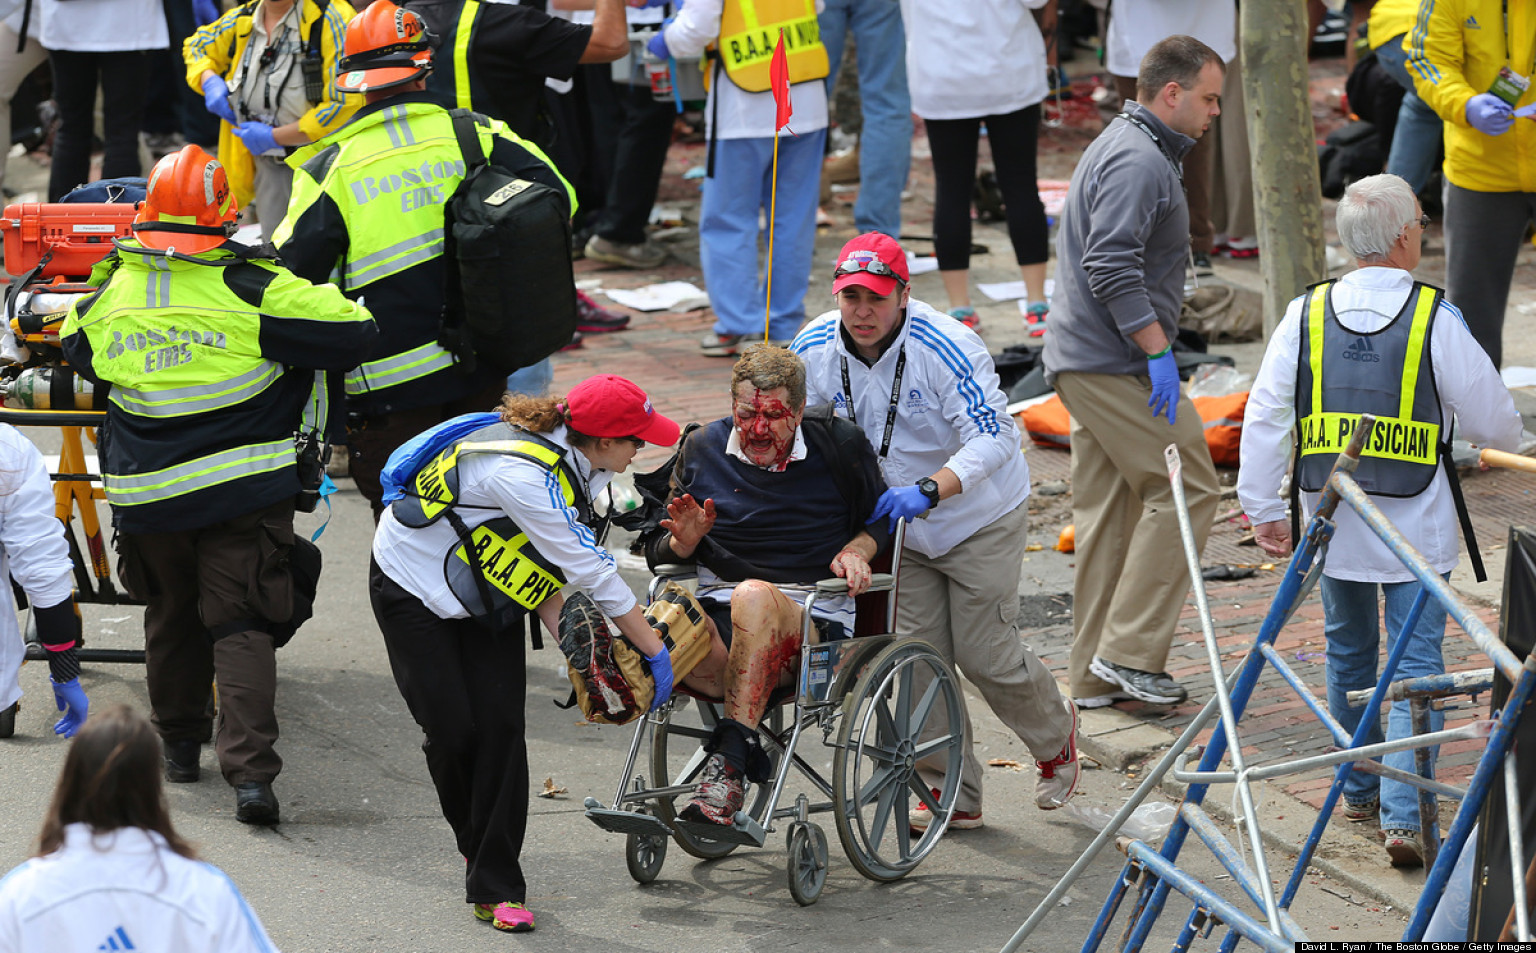 Boston Marathon Bombing (GRAPHIC PHOTOS)